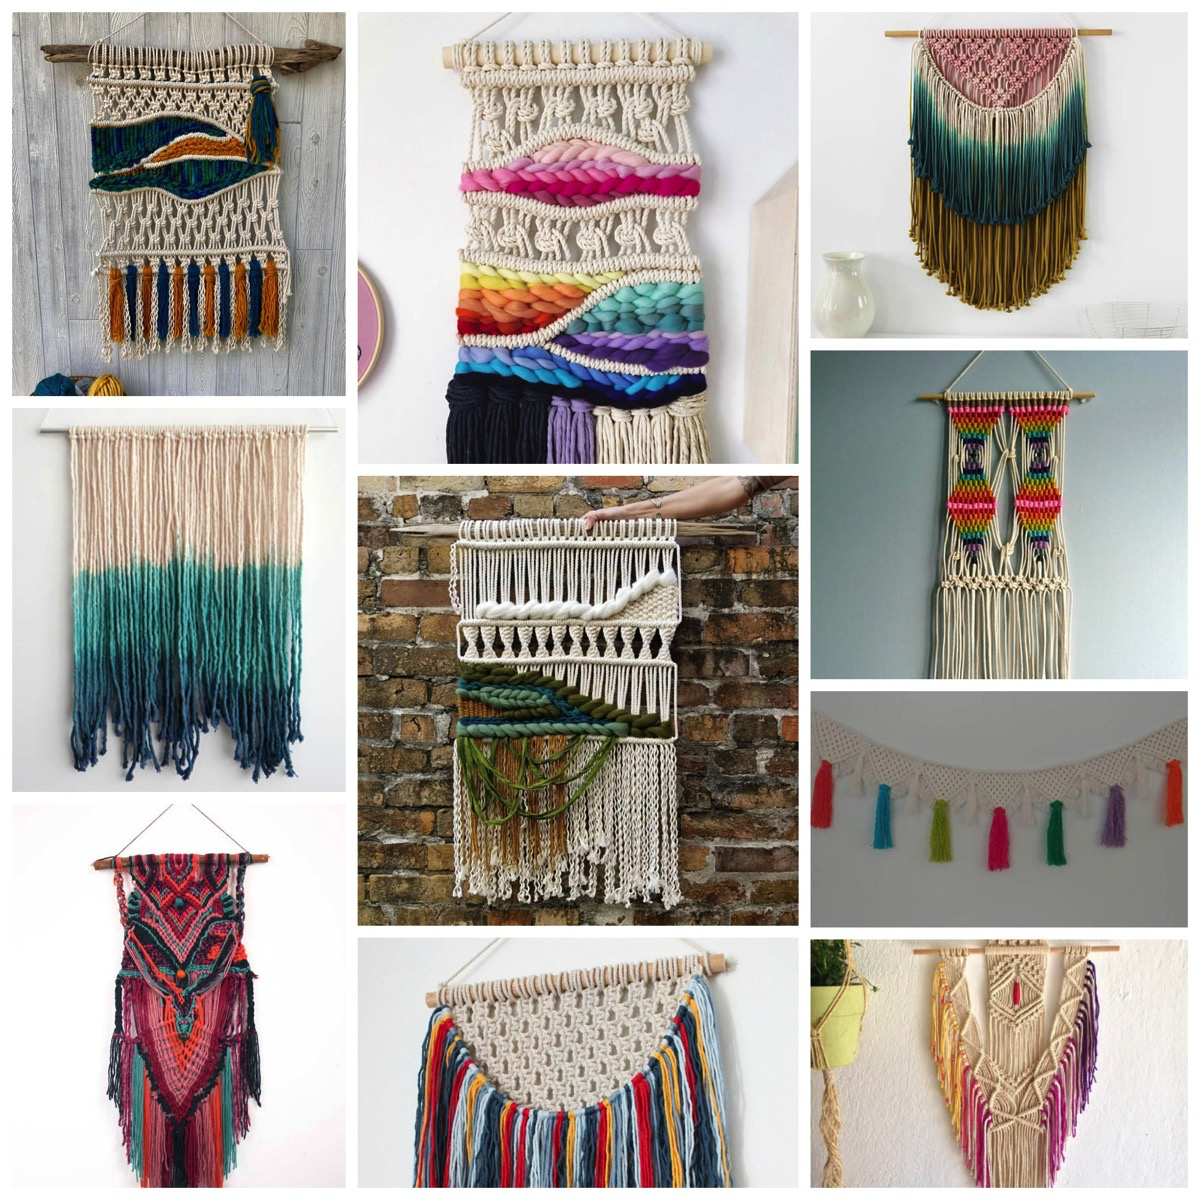 Top 10: Most Colorful and Unique Boho Macrame Wall Art For Your Home